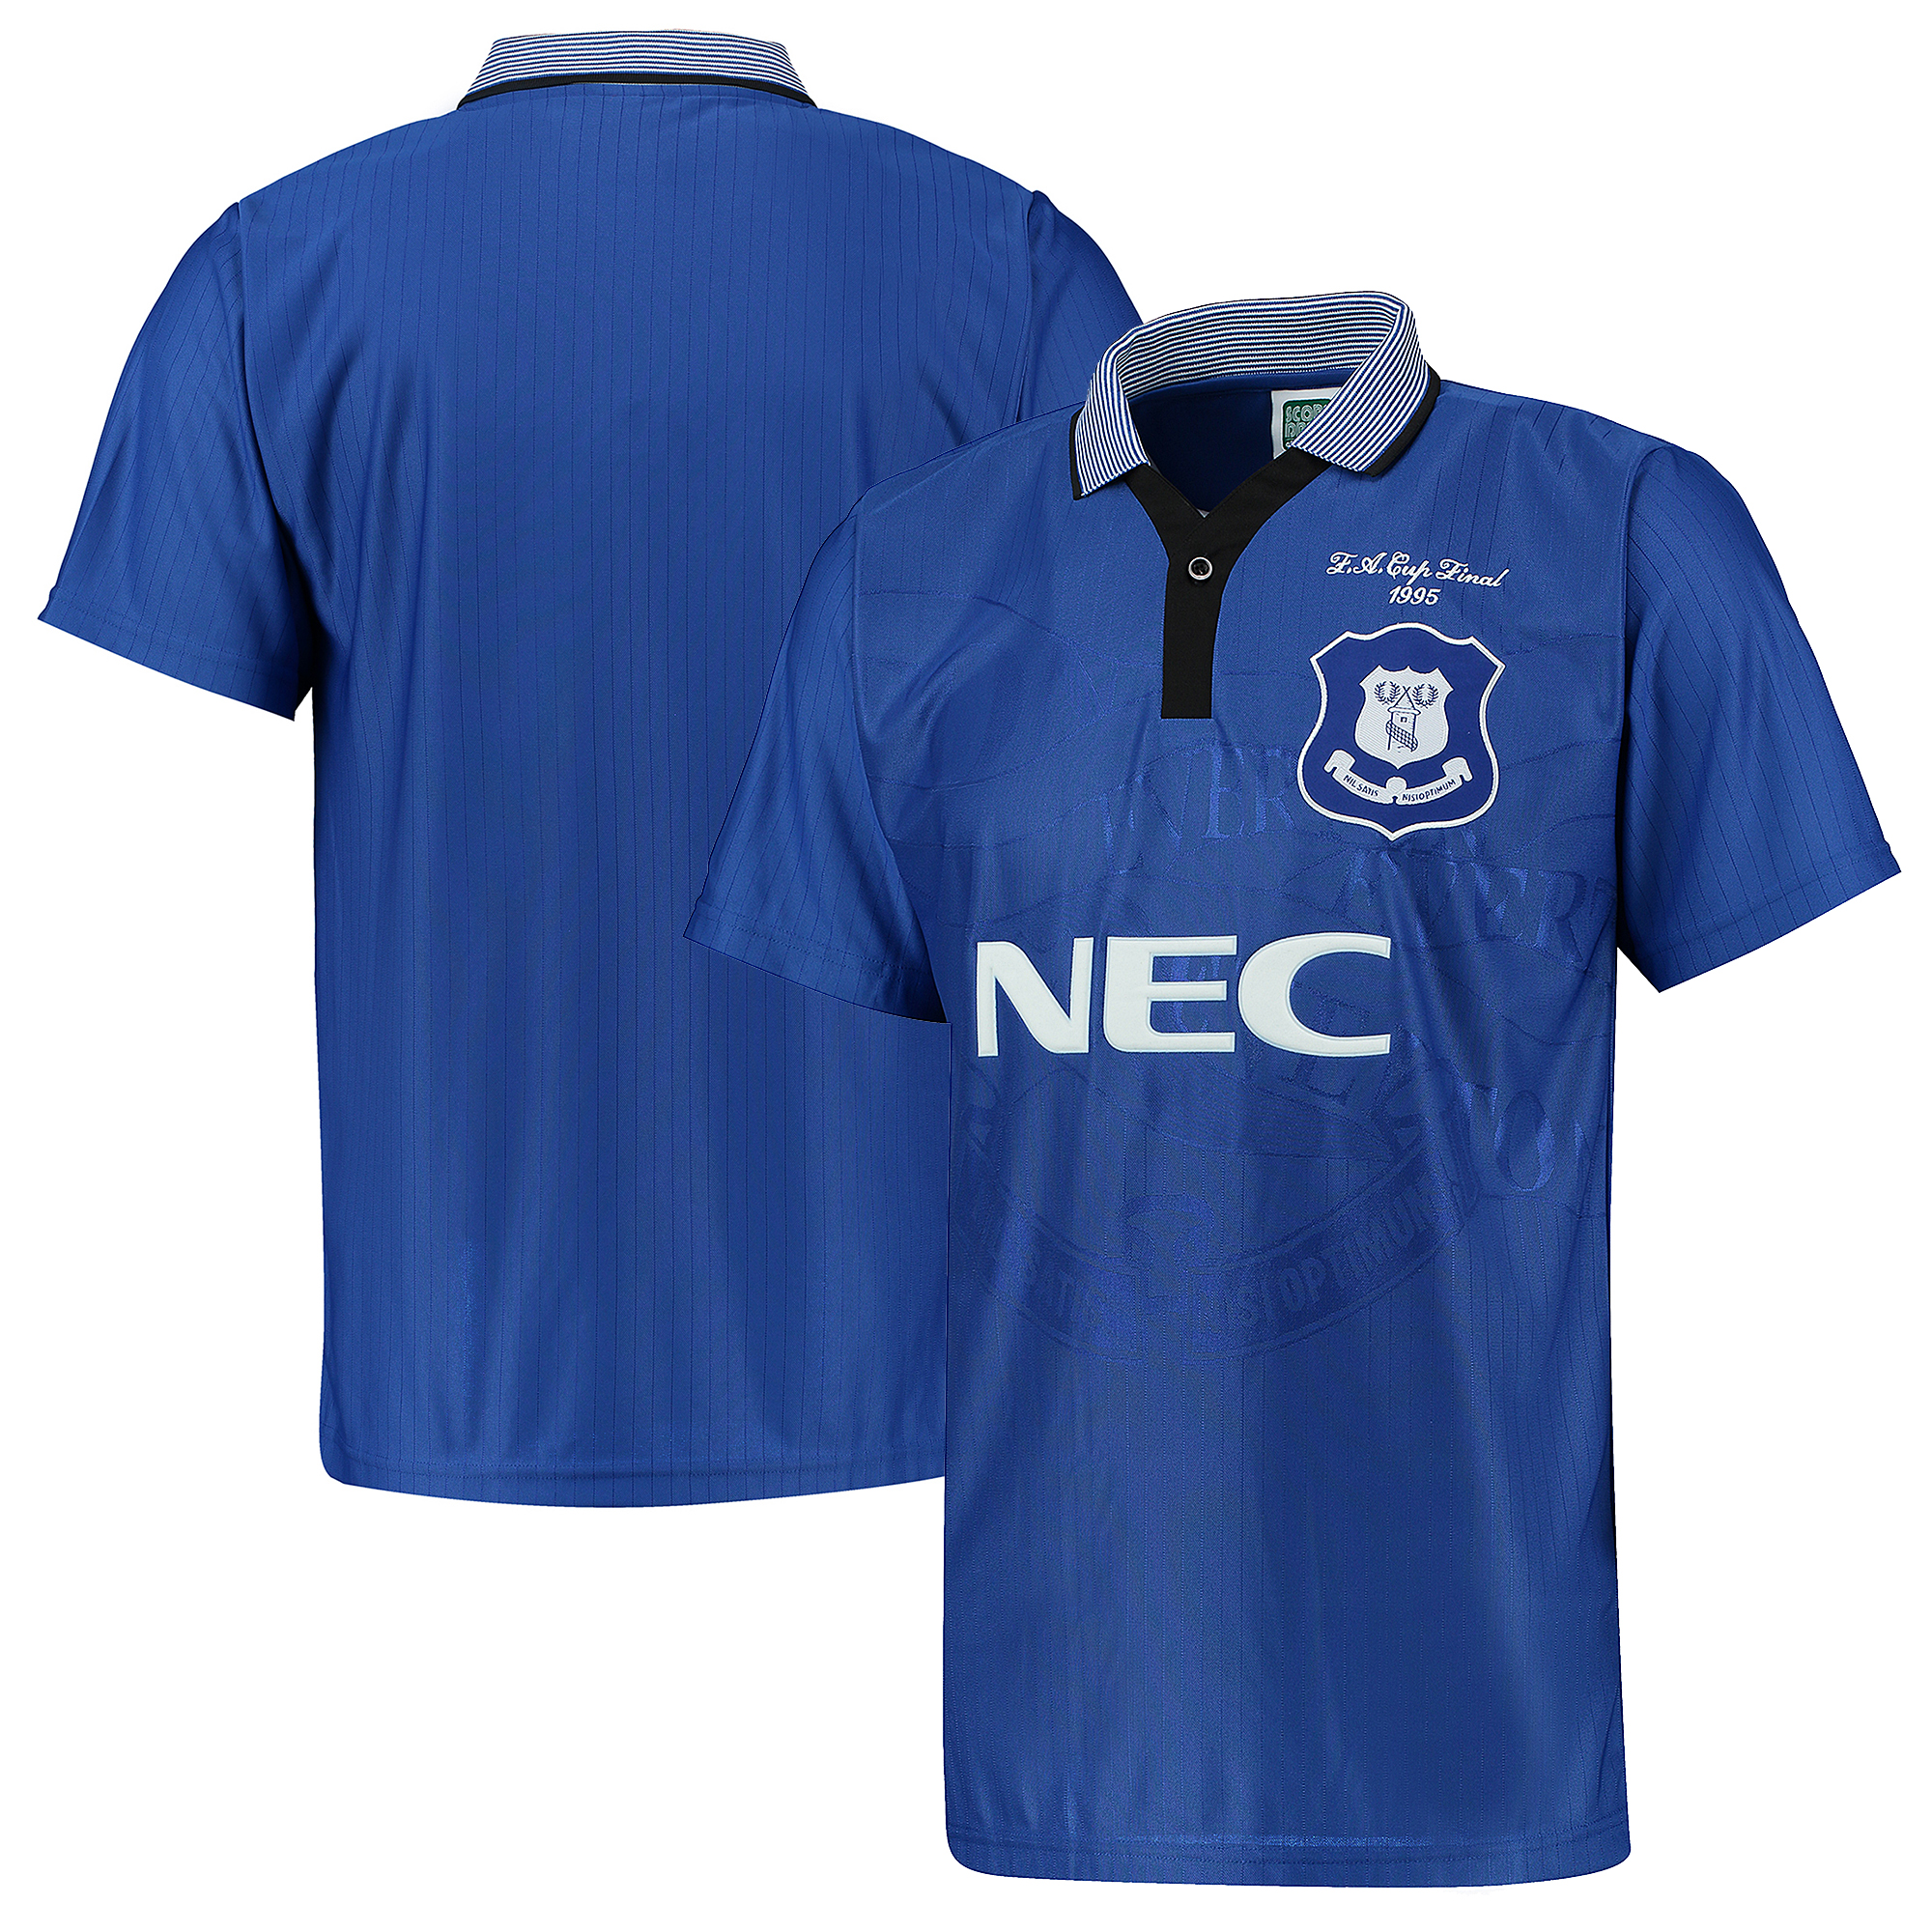 Everton 1995 FA Cup Winners Shirt - Everton Blue